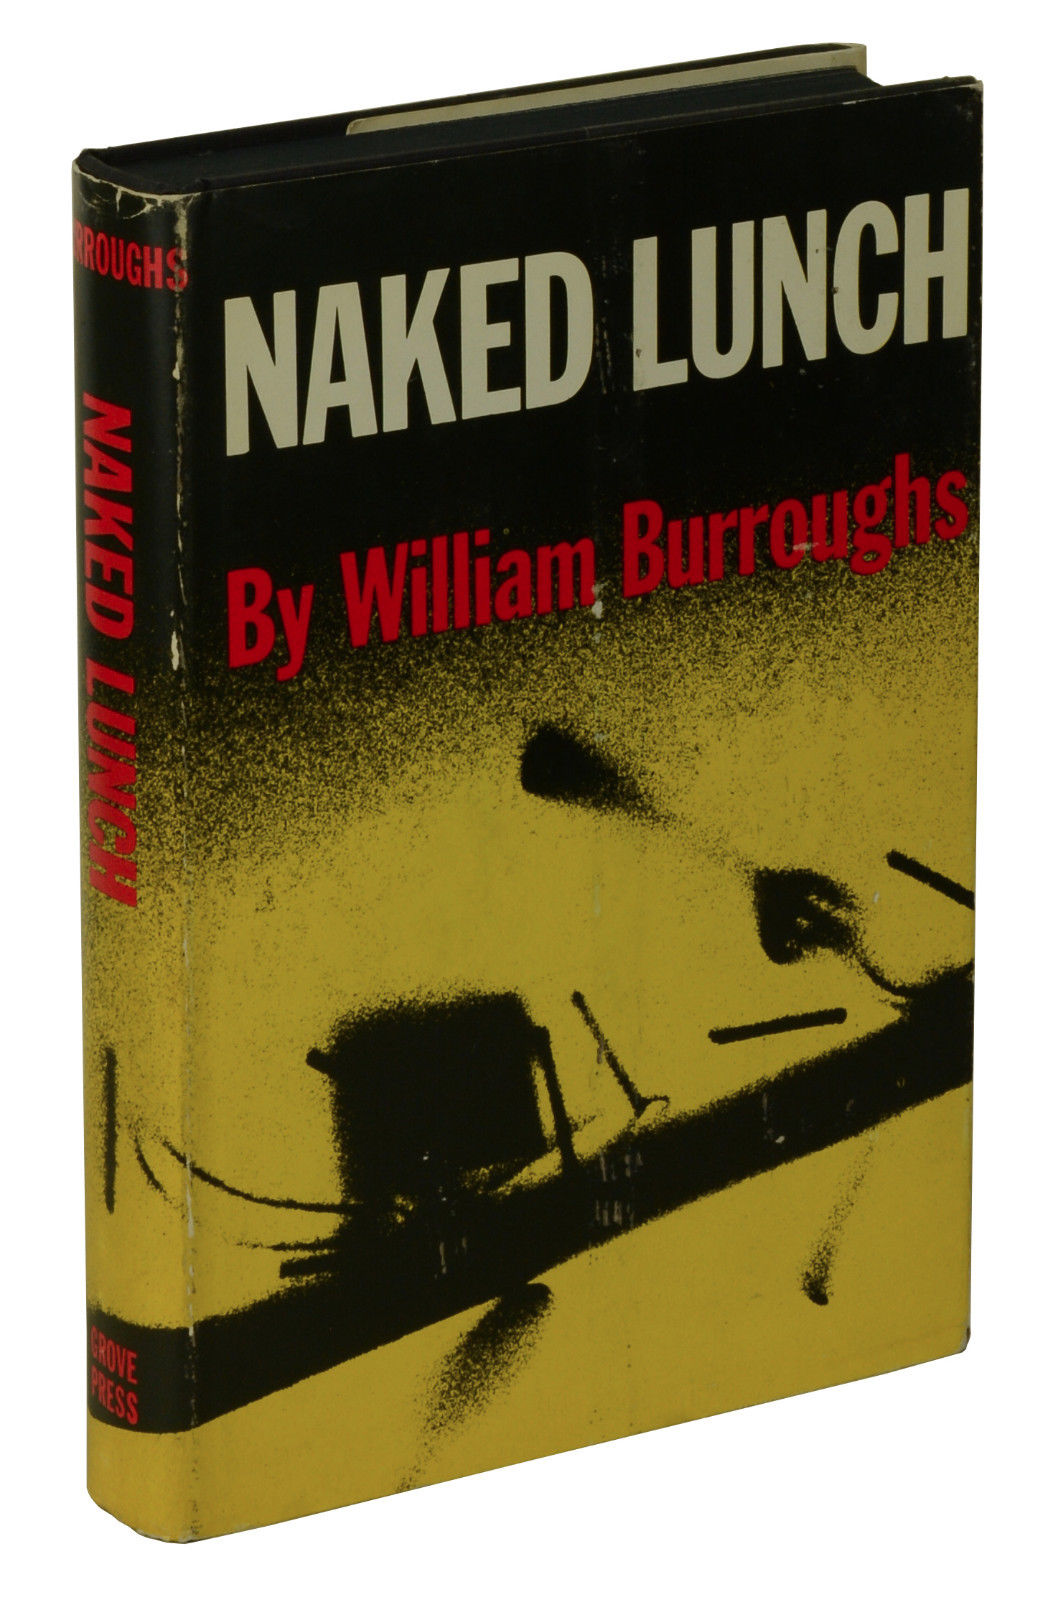 William S Burroughs / NAKED LUNCH 1st Edition 1959 | eBay